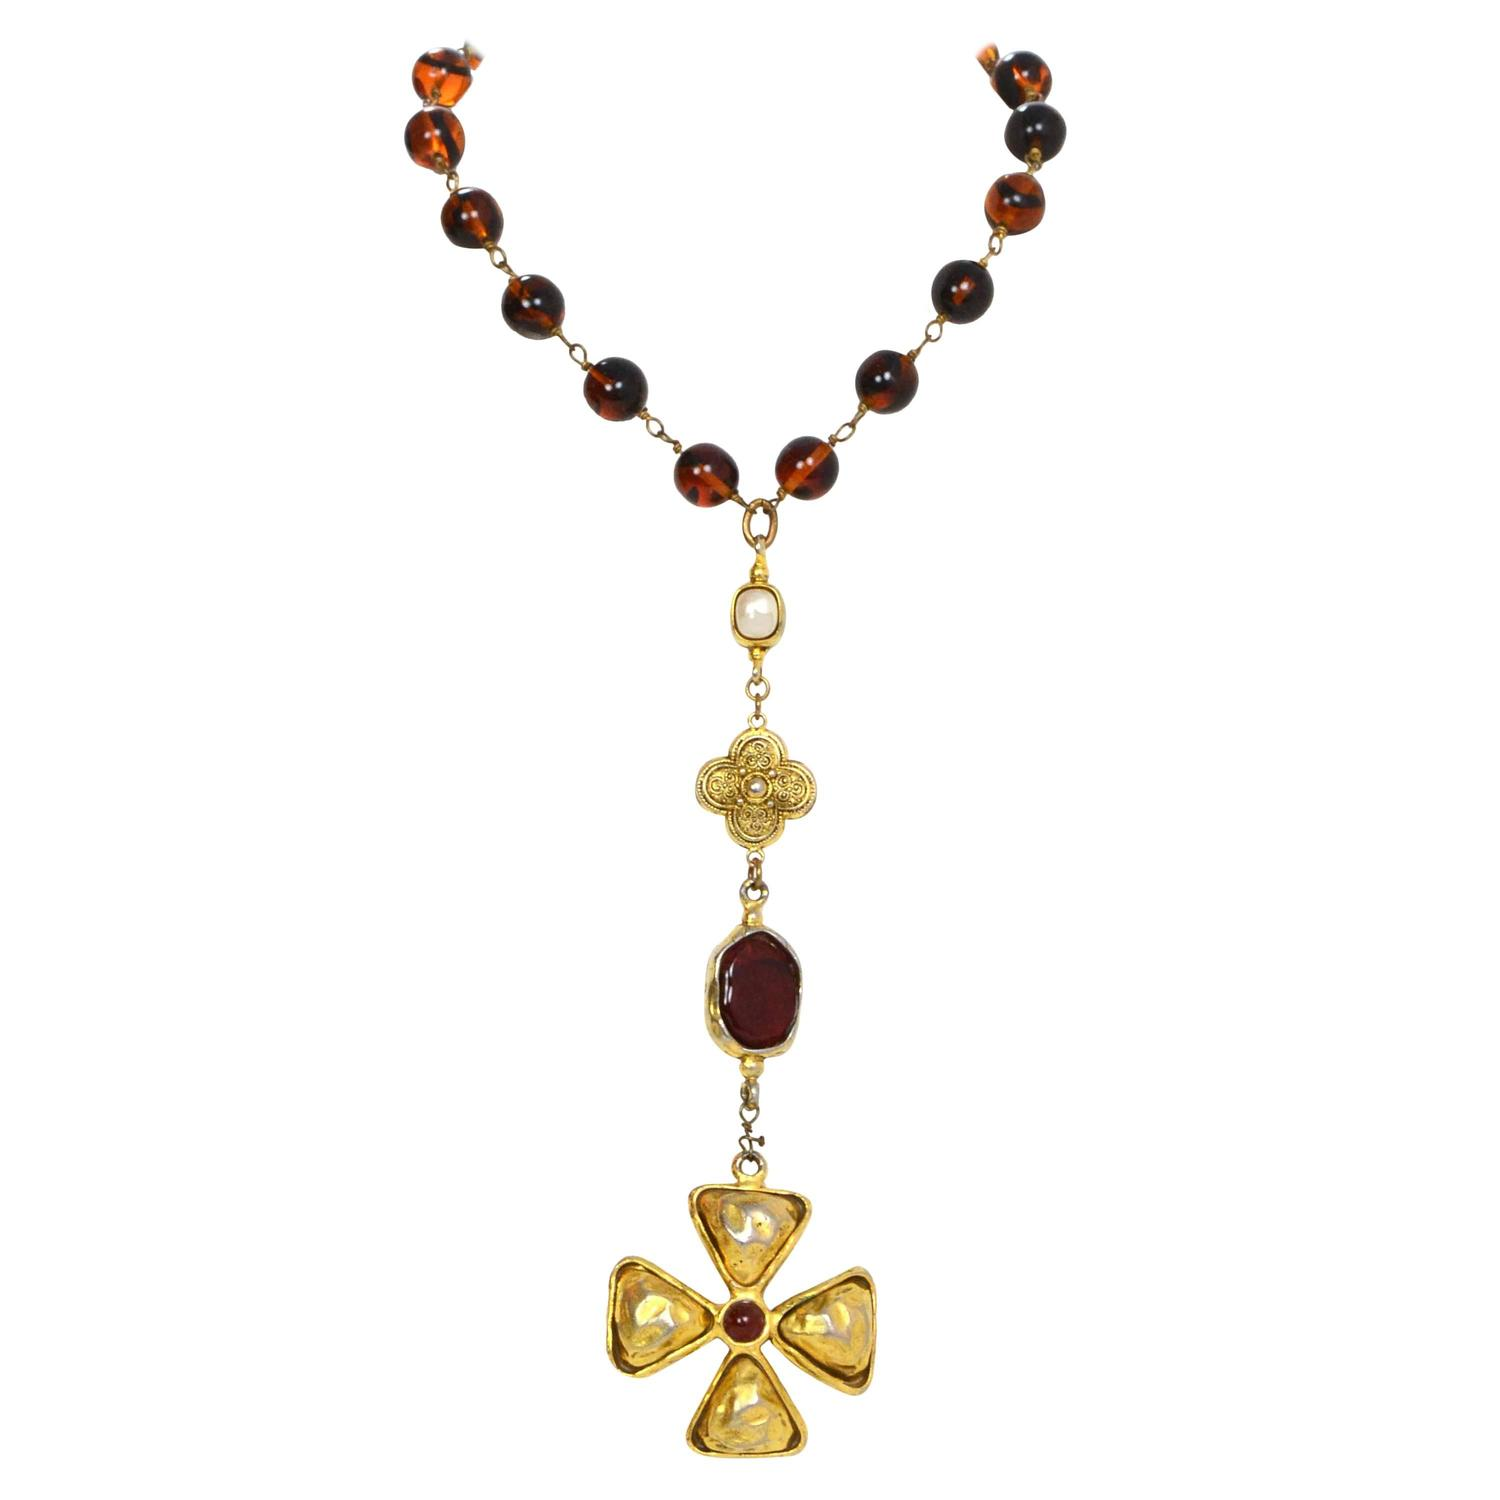 Chanel Vintage 70s Rosary Style Brown Bead And Cross